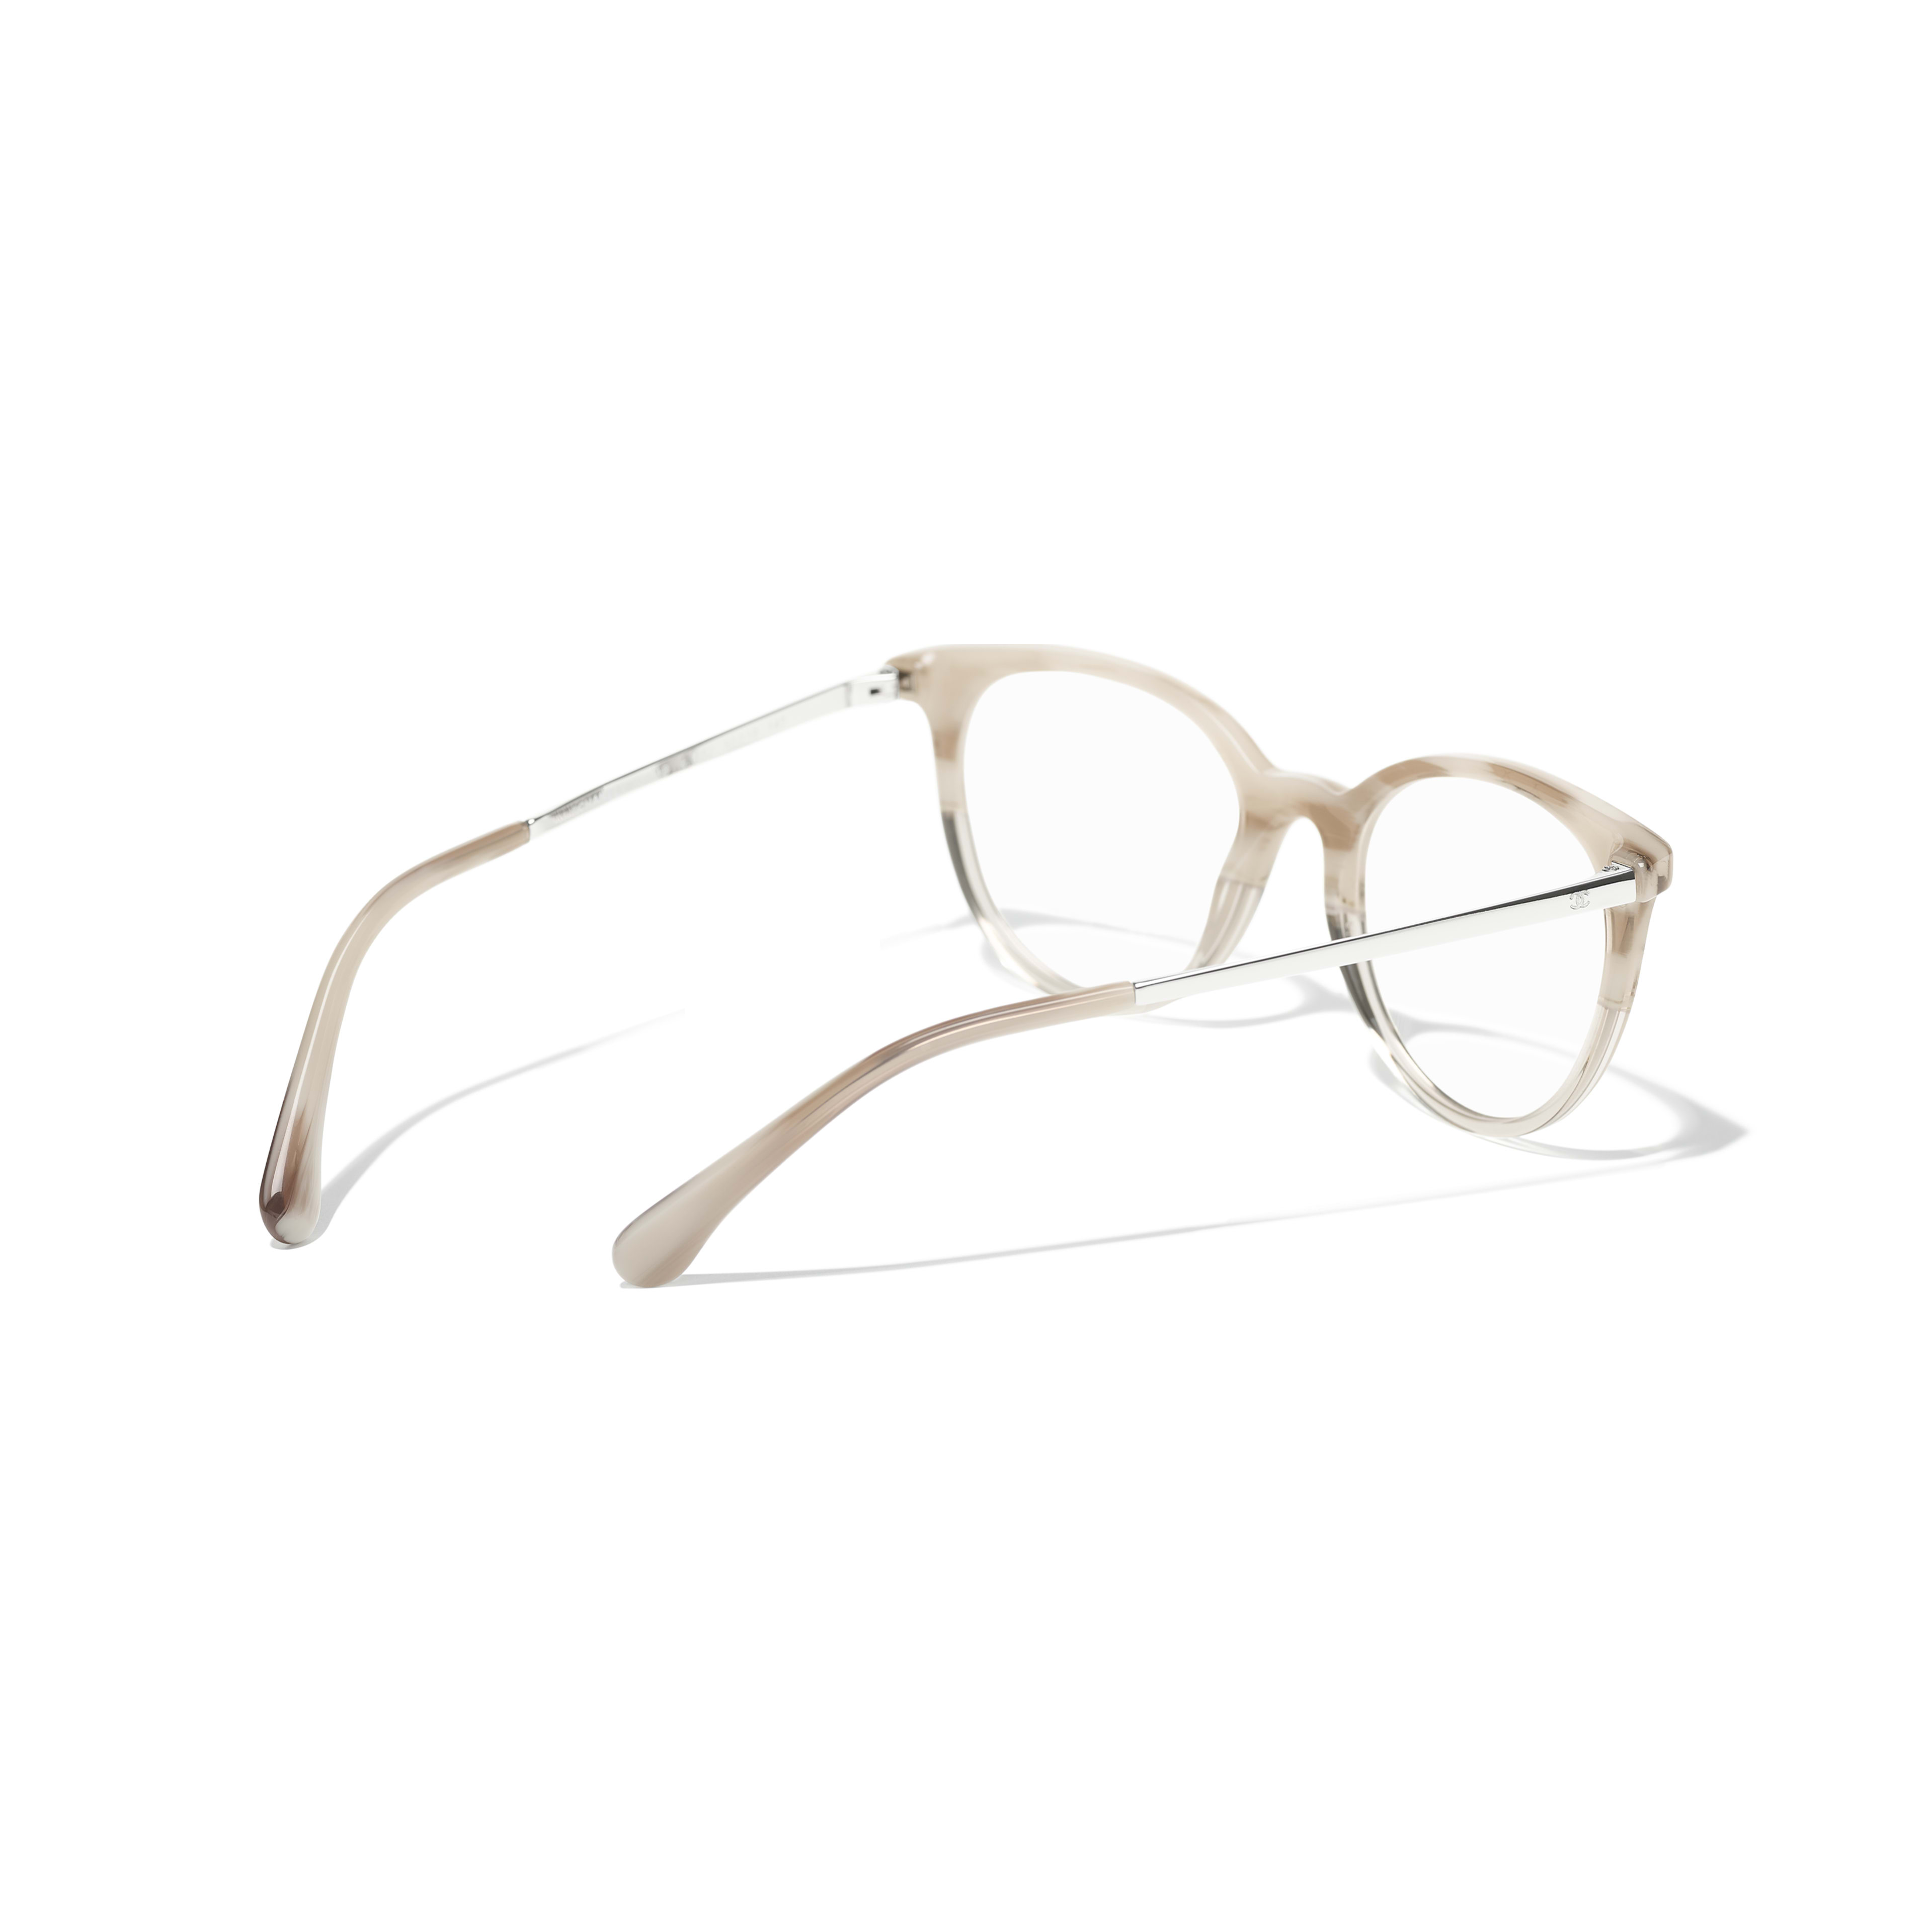 Pantos Eyeglasses - Beige - Acetate, Metal & Strass - CHANEL - Extra view - see standard sized version